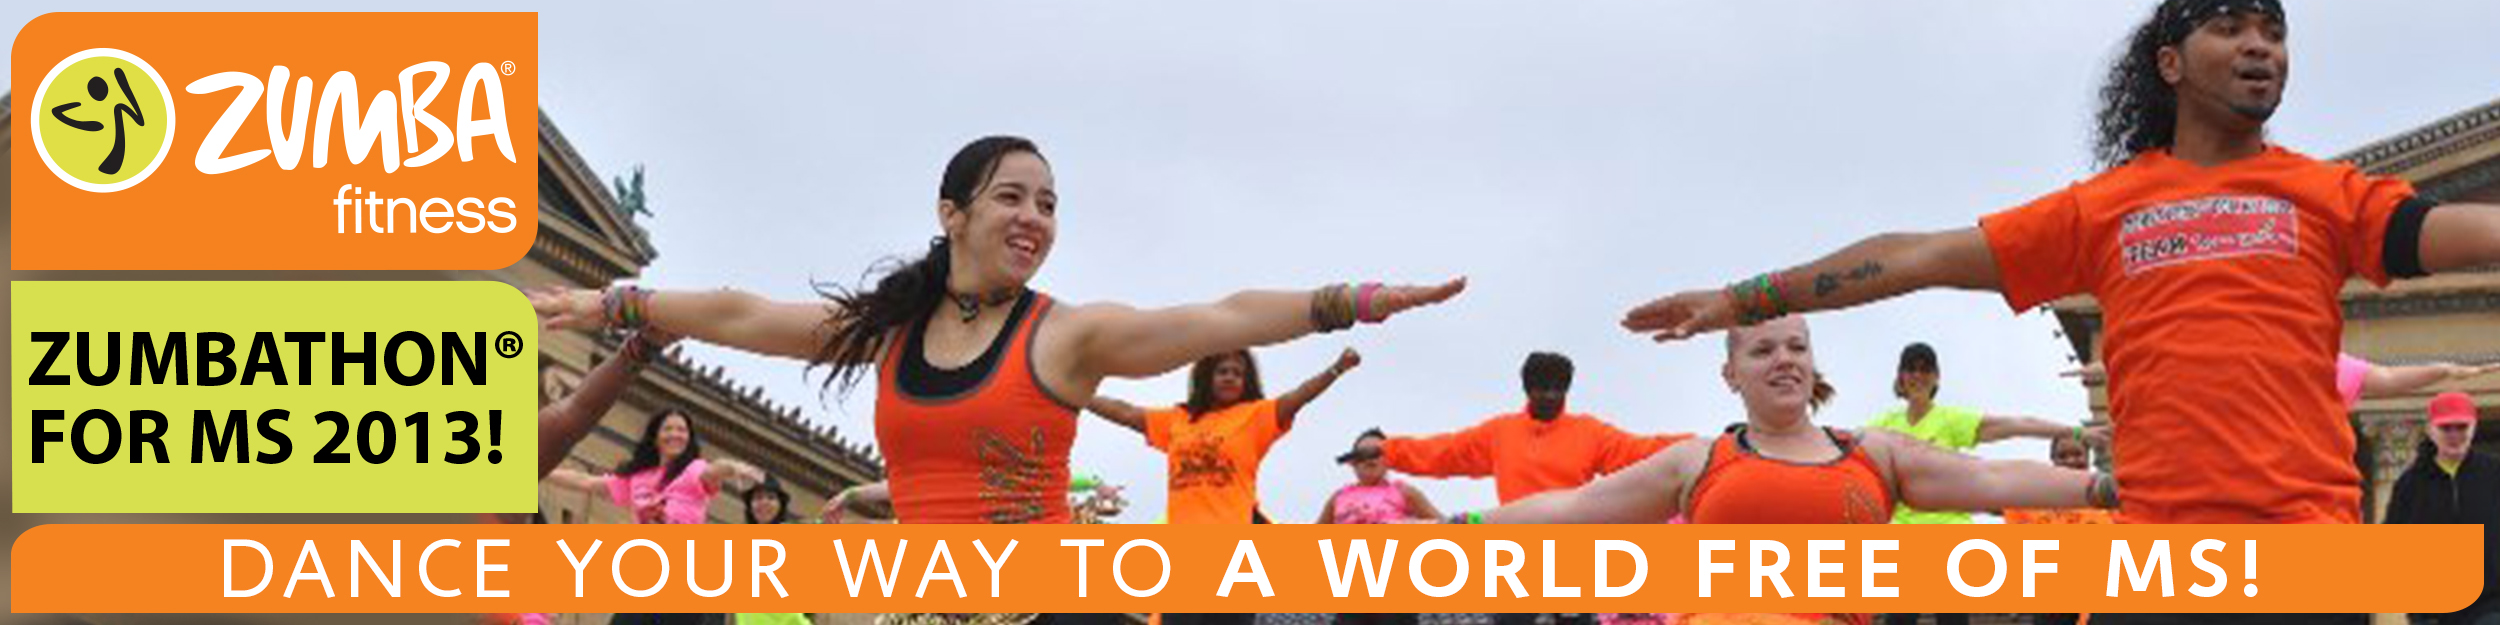 Zumbathon for MS 2013 web banner